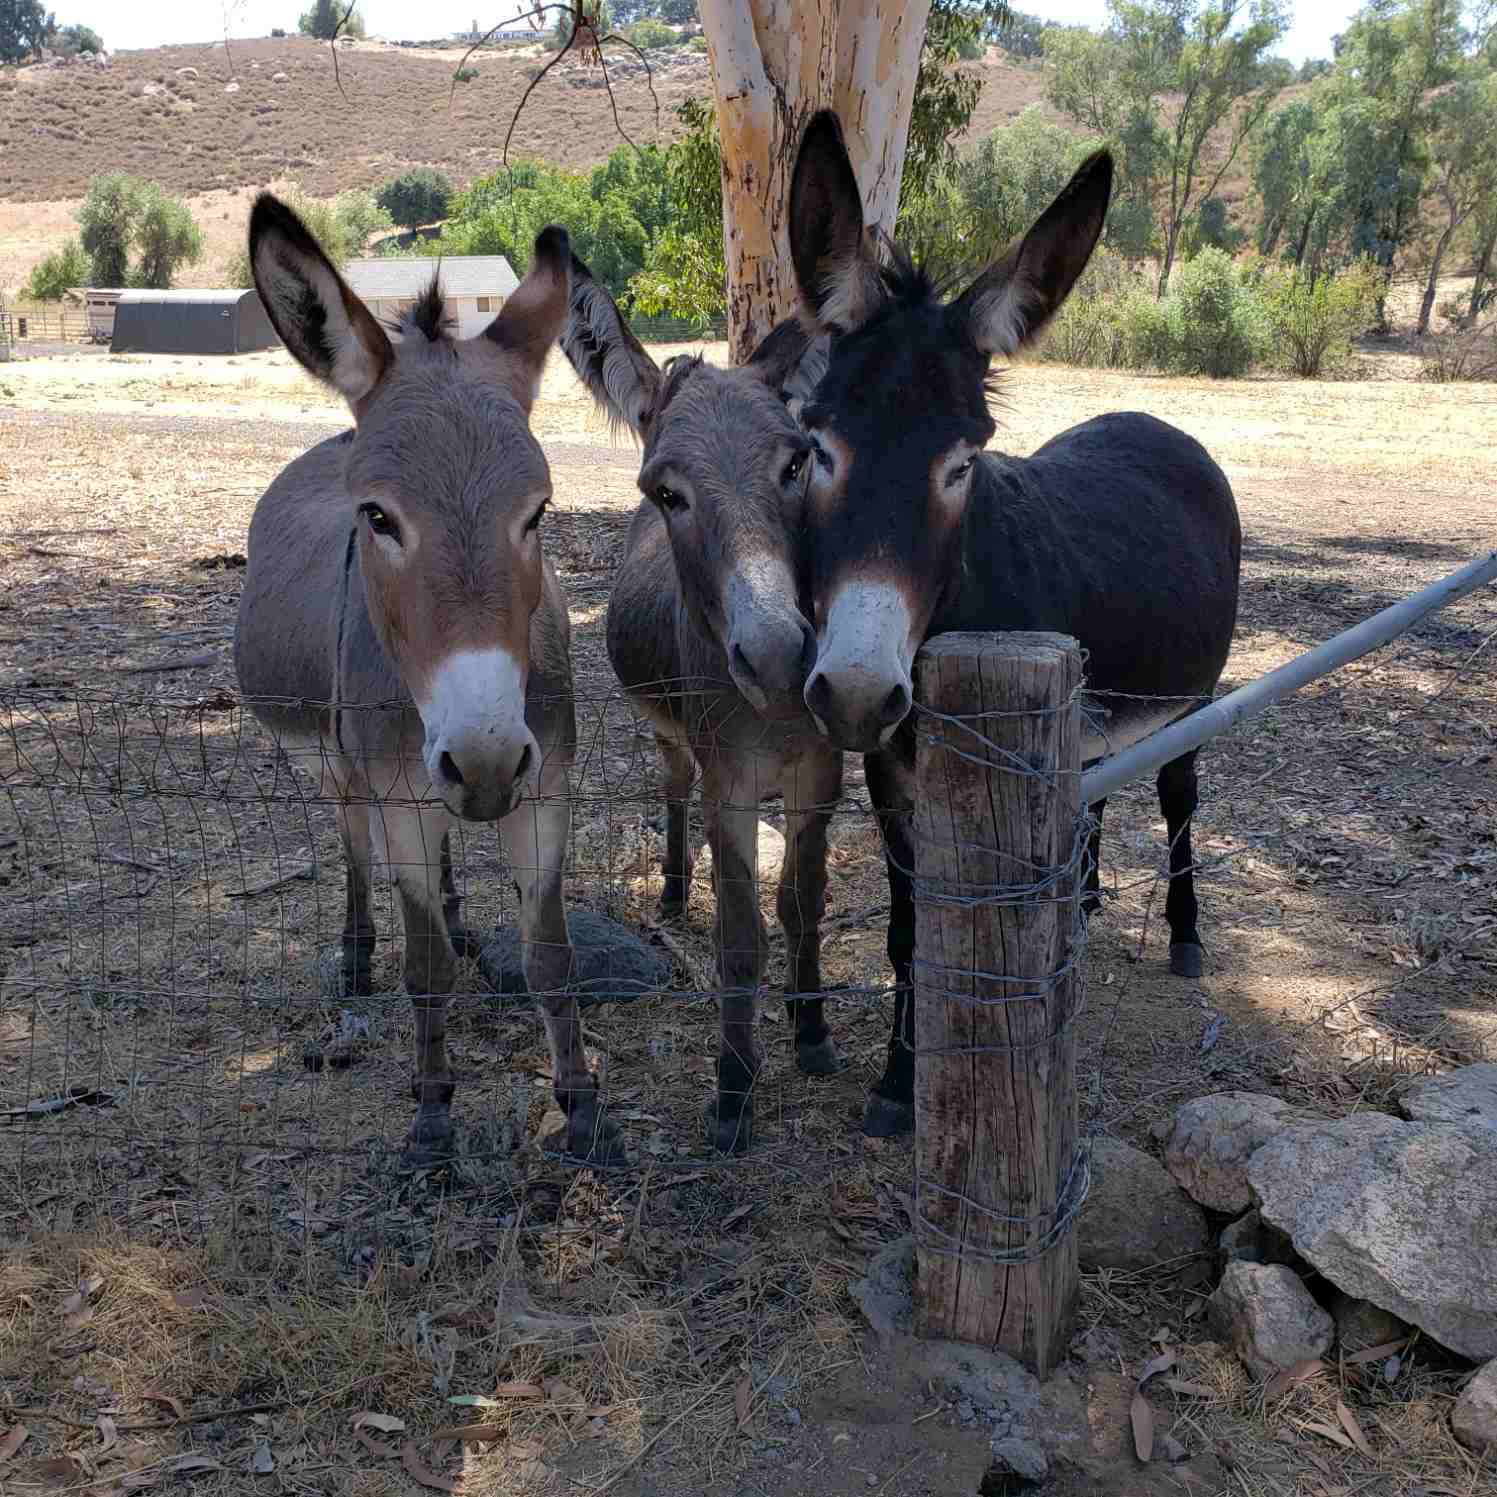 Hee Haw Place Donkey Rescue